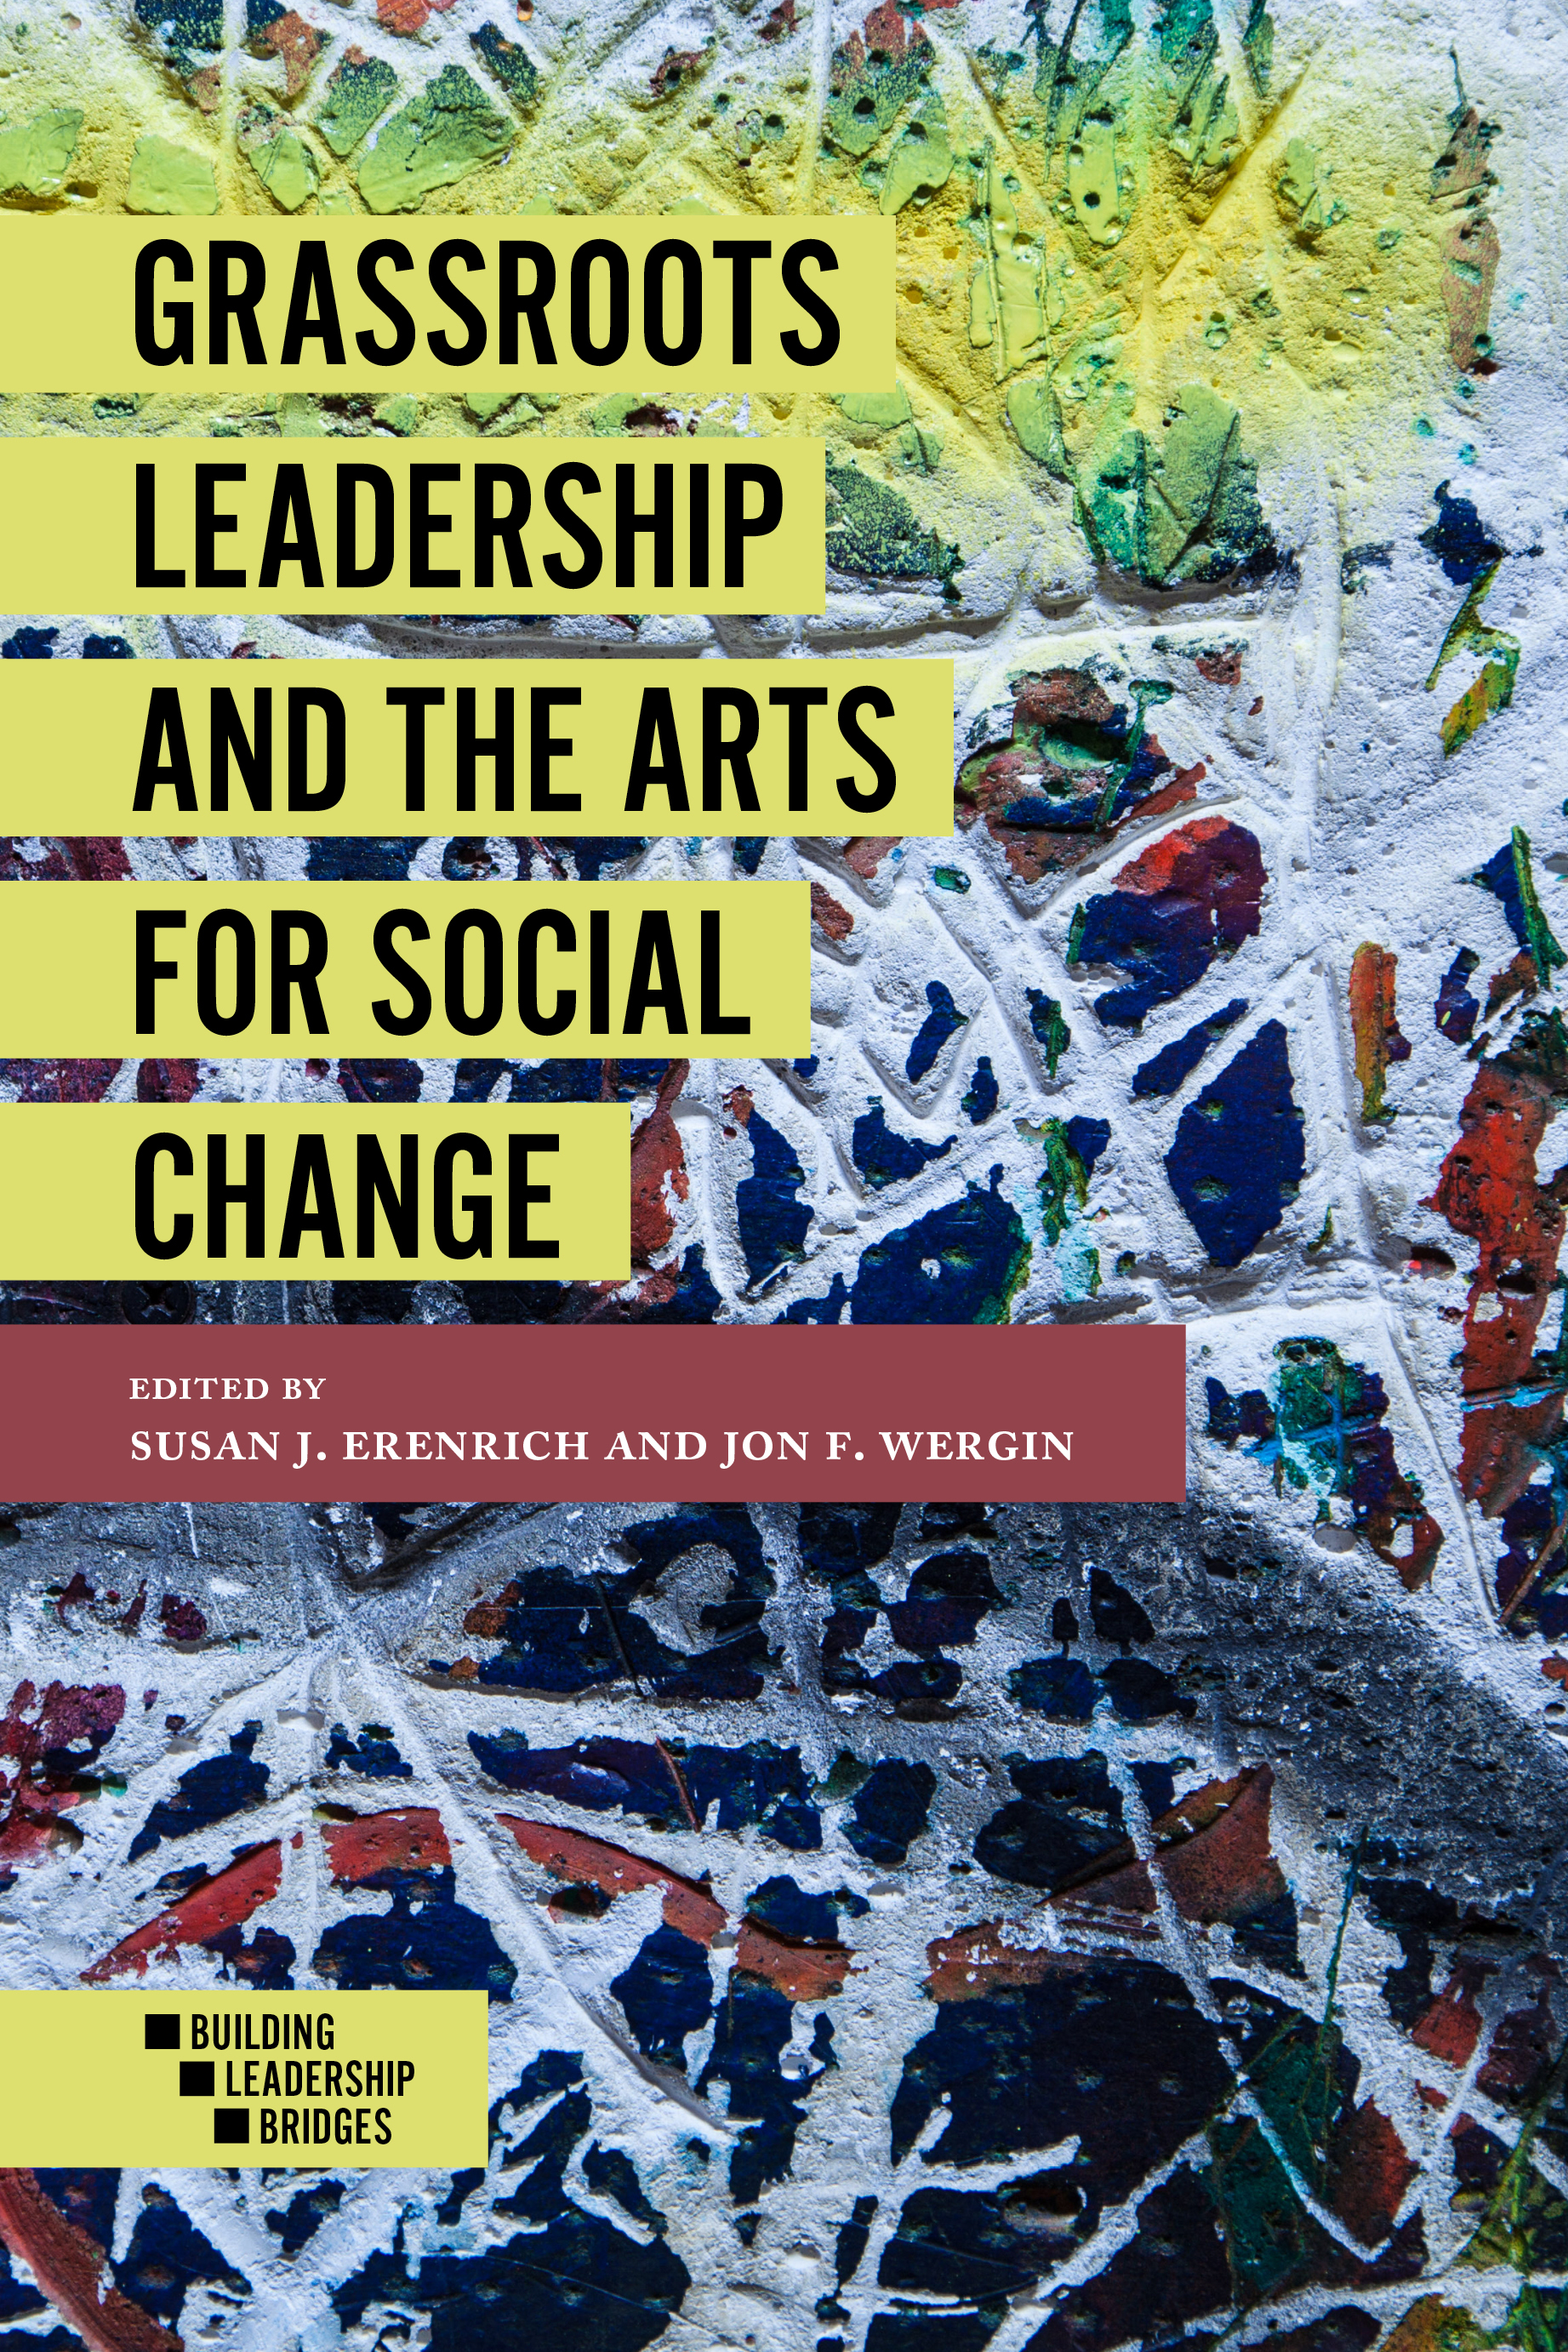 Download Ebook Grassroots Leadership and the Arts For Social Change by Susan J. Erenrich Pdf